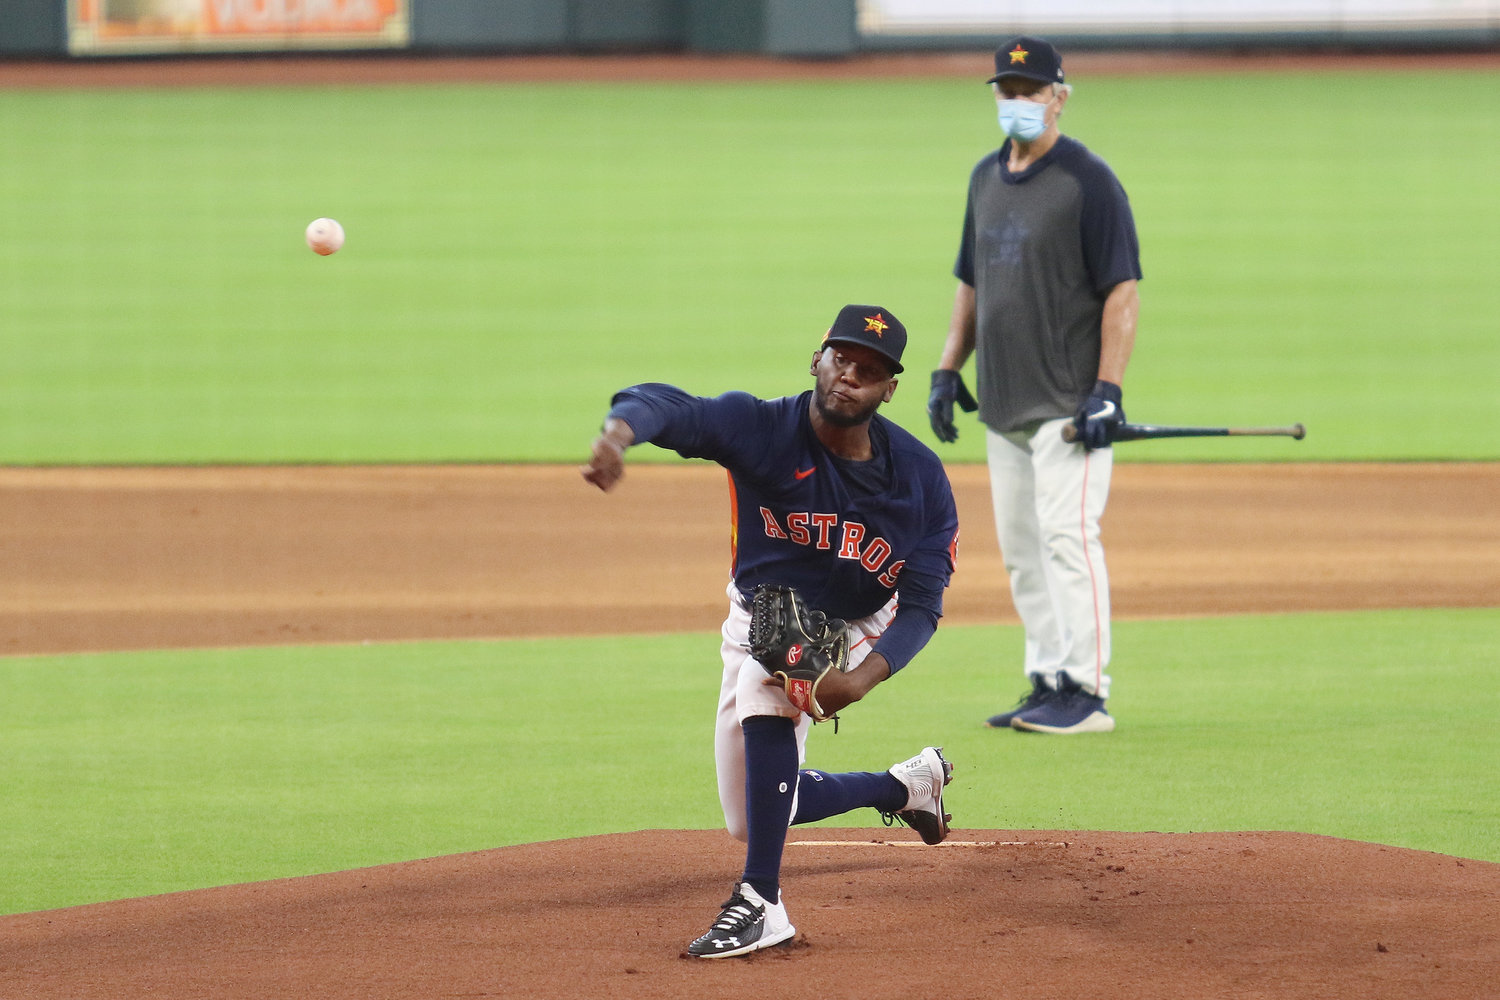 Houston Astros pitcher Enoli Paredes unleashes a pitch during batting practice at Minute Maid Park Sunday afternoon.